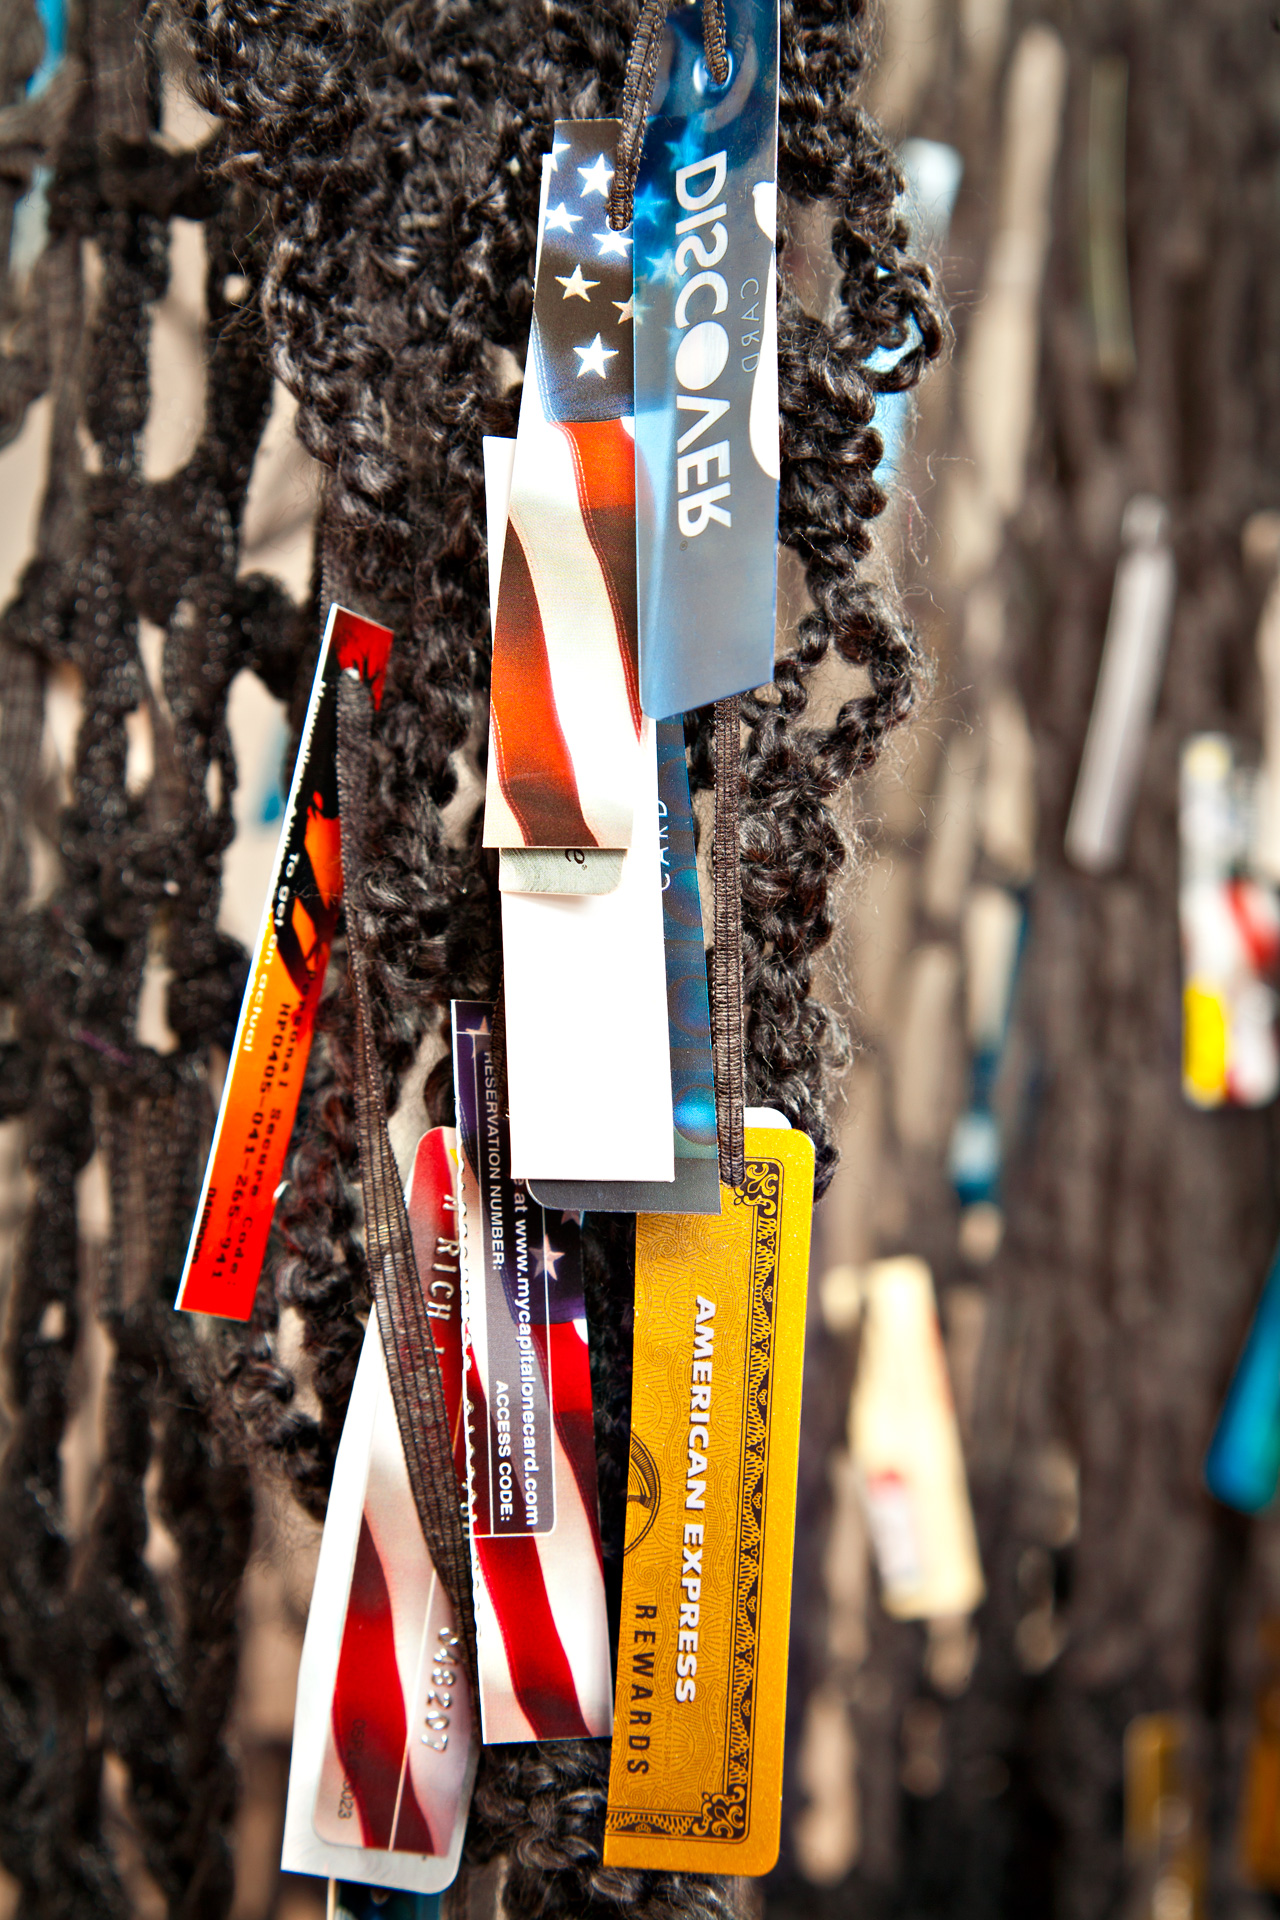 Recycled promotional credit cards